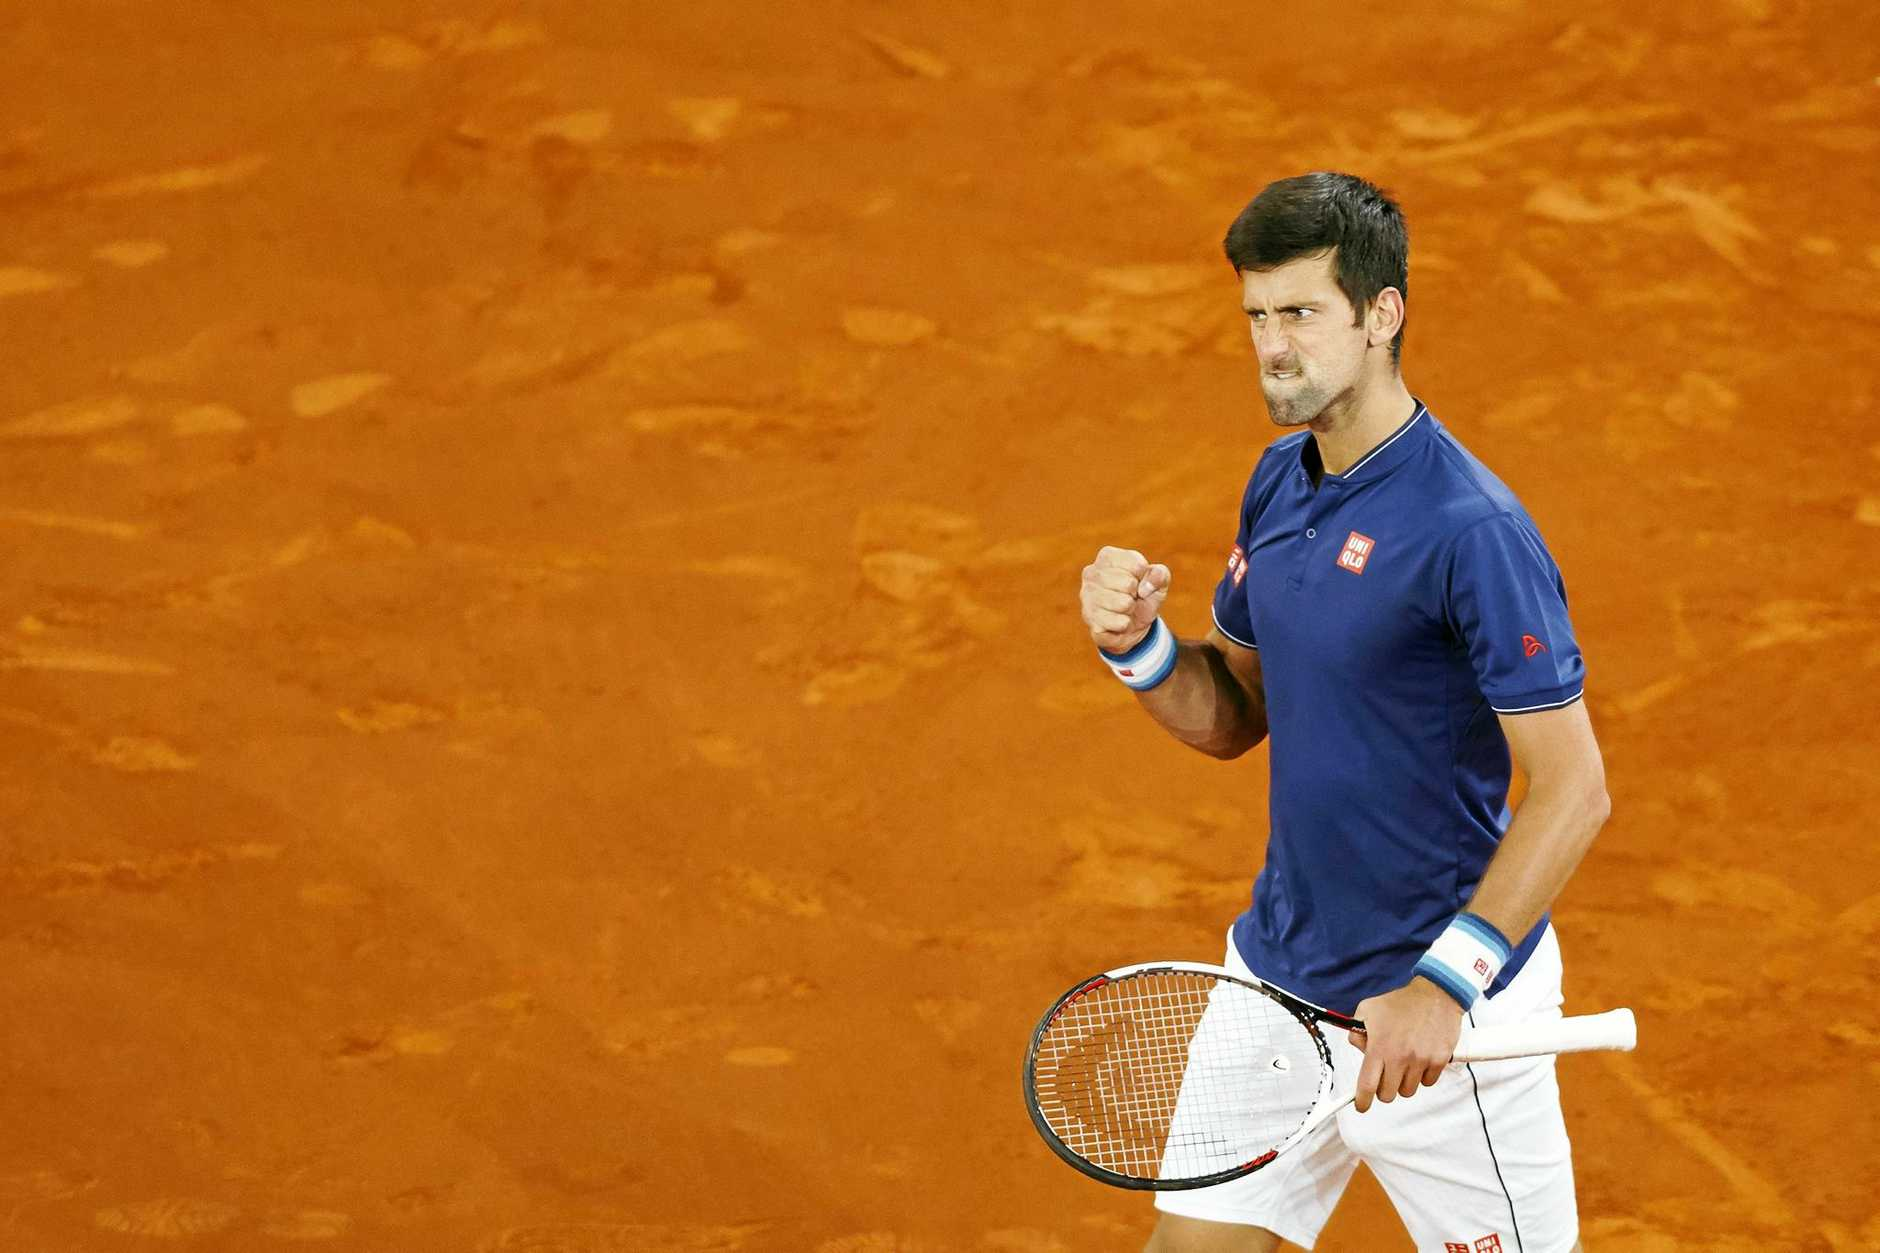 Novak Djokovic from Serbia reacts after winning a point against Feliciano Lopez during a Madrid Open tennis tournament match in Madrid, Spain, Thursday, May 11, 2017 . (AP Photo/Daniel Ochoa de Olza)